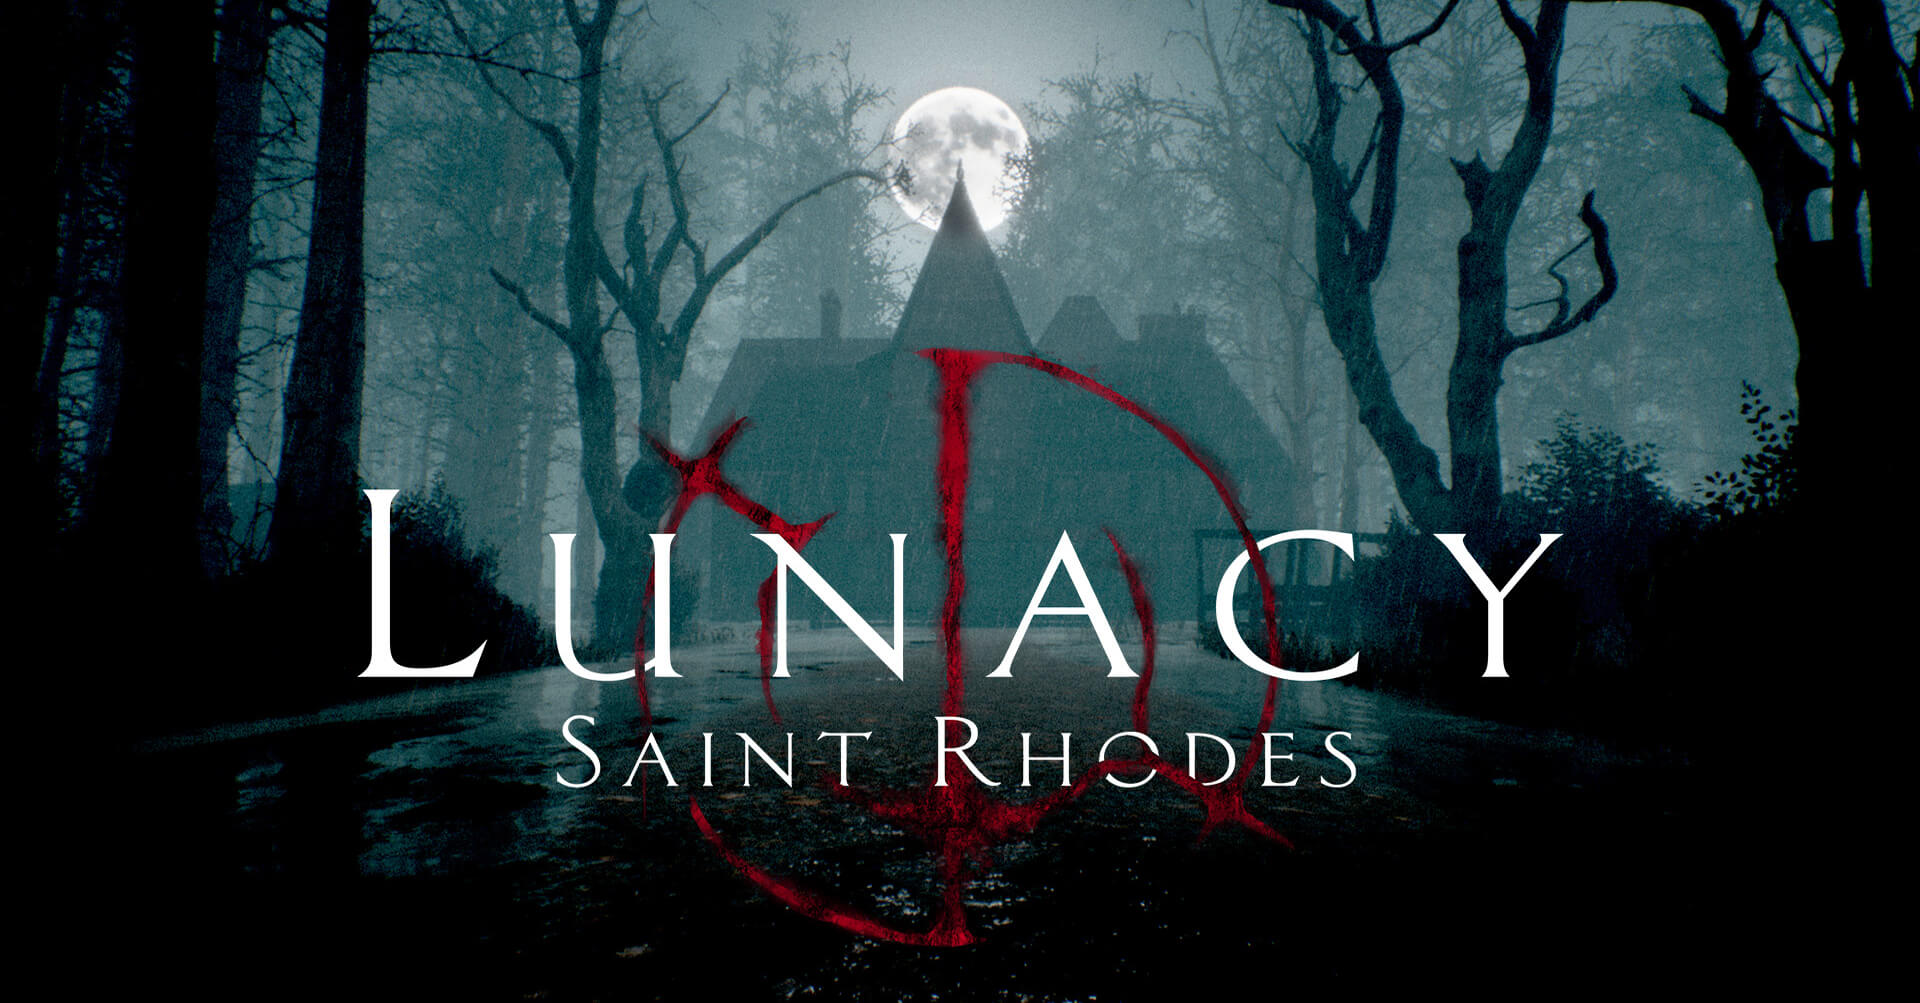 lunacy saint rhodes key art 1 - LUNACY: SAINT RHODES Is A Horror Game Which Adapts To Your Play Style